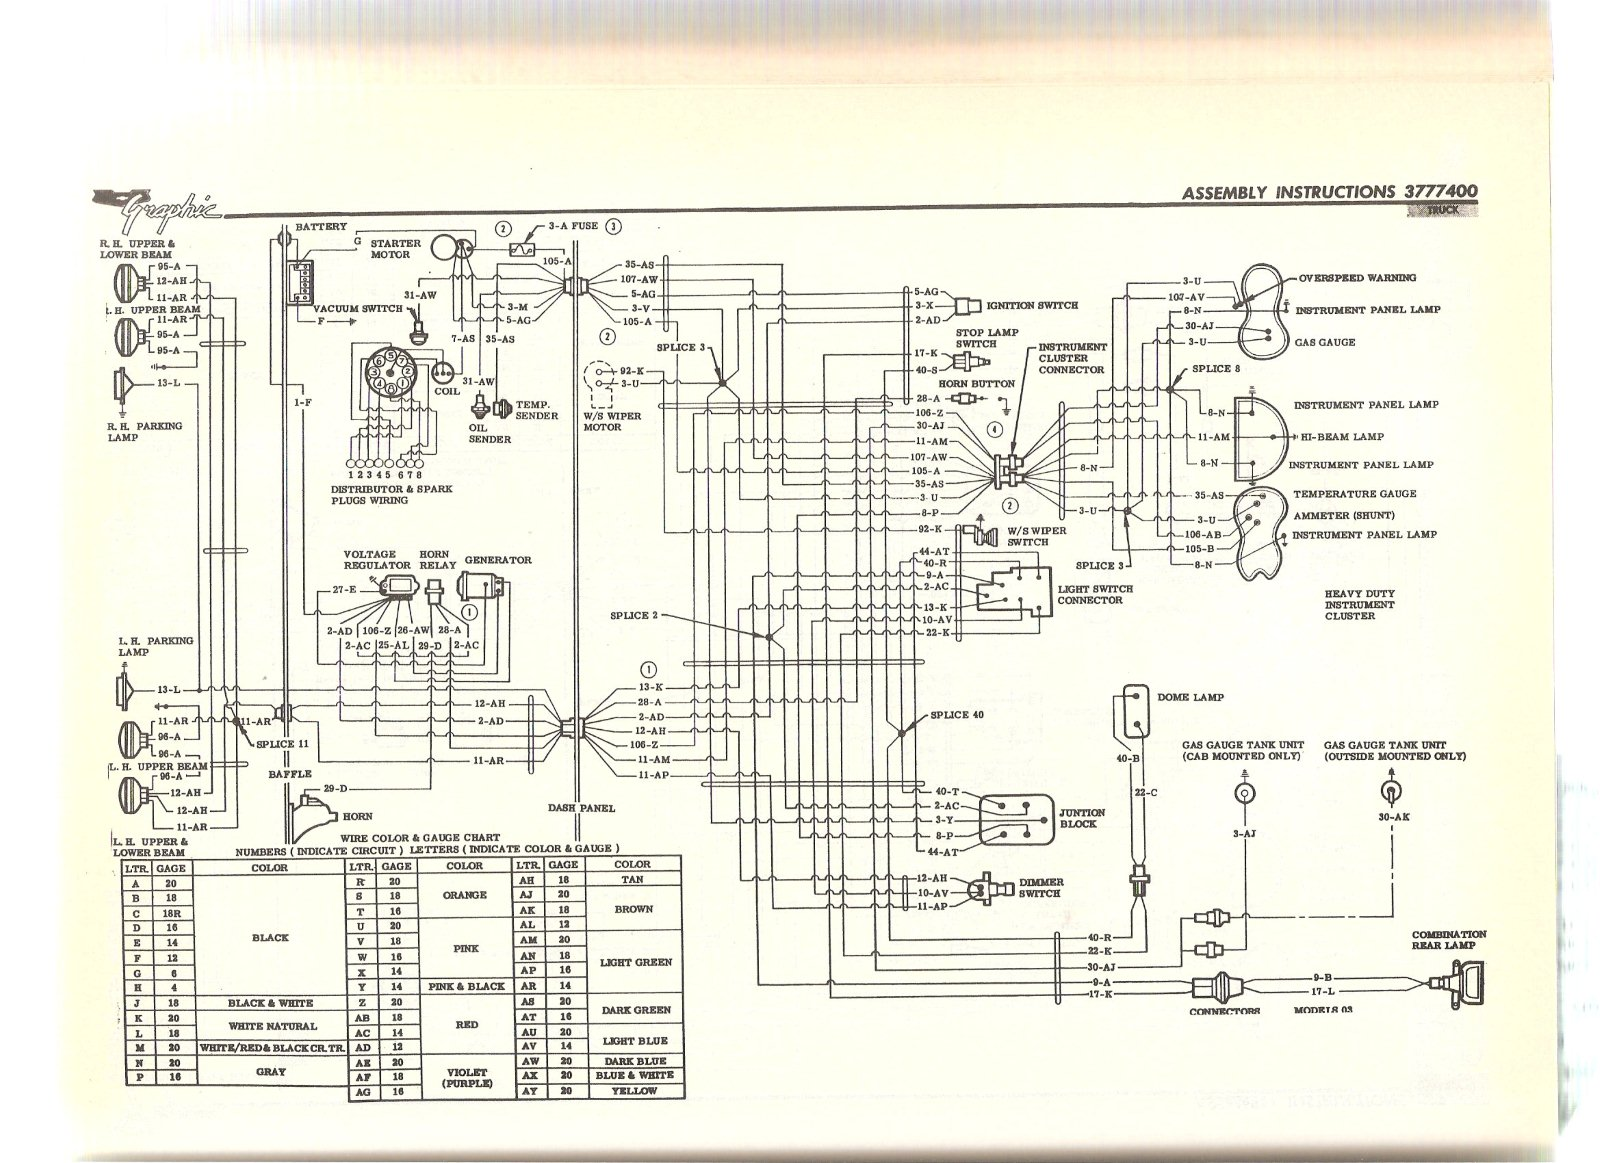 wiring diagram the 1947 present chevrolet gmc truck message wiring diagram the 1947 present chevrolet gmc truck message board network